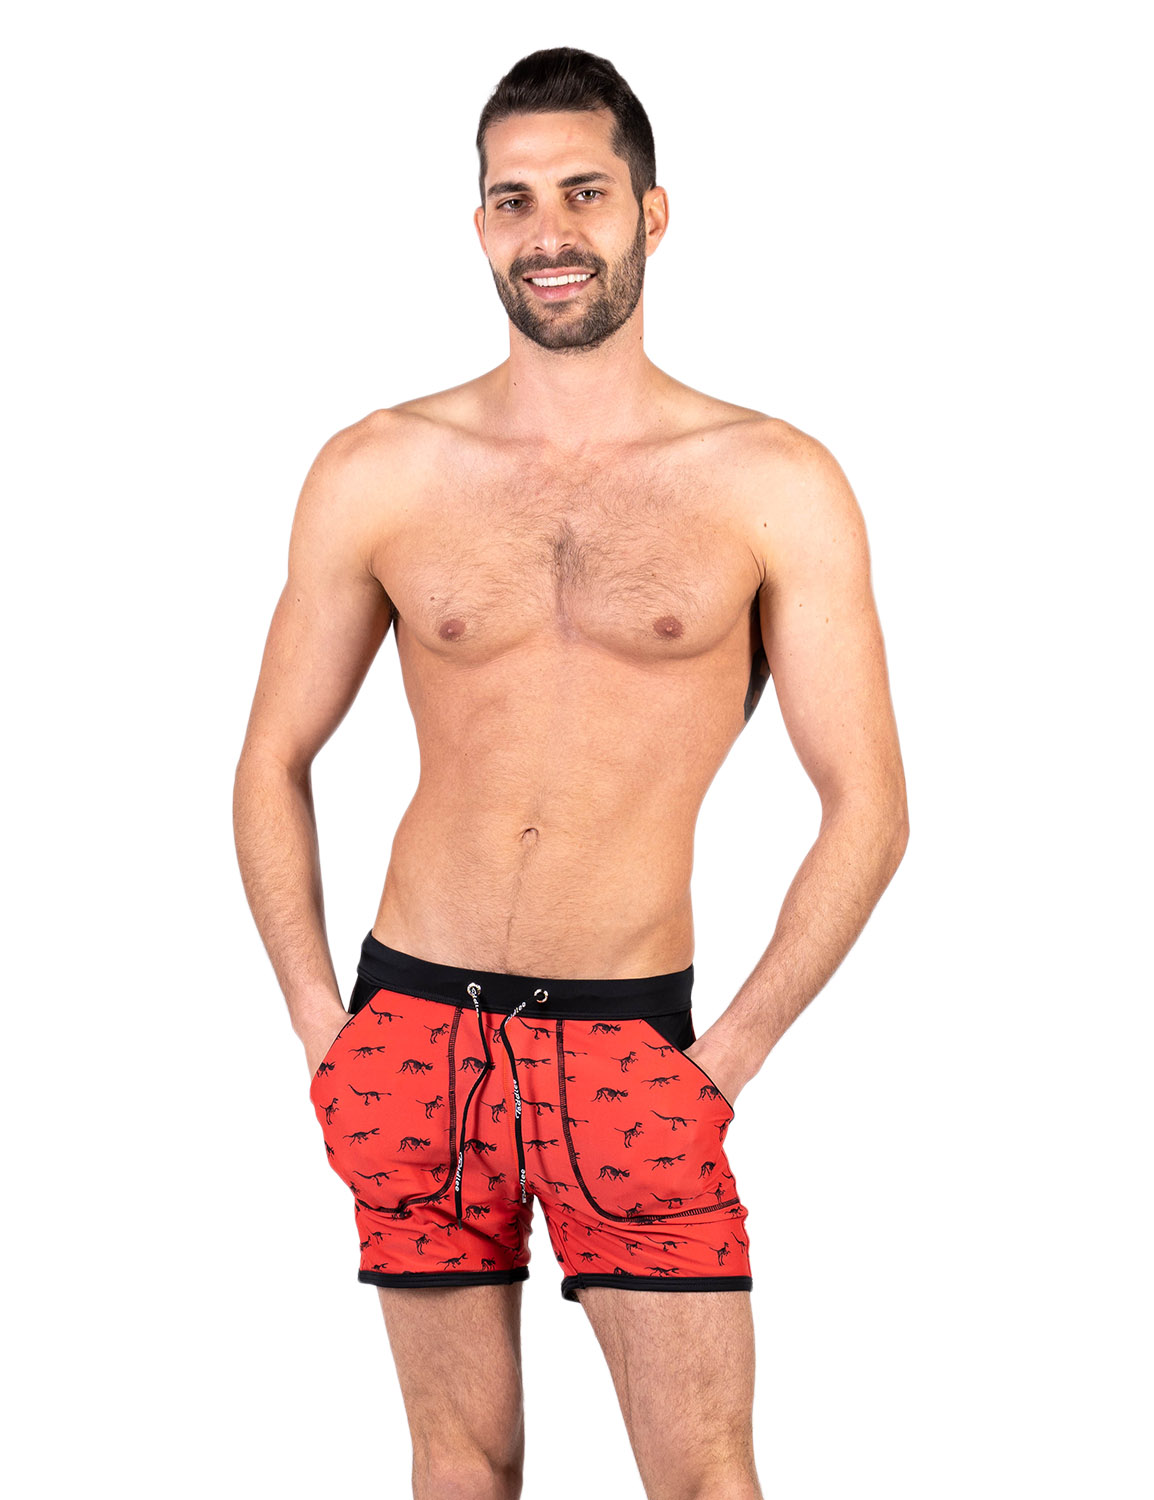 12da521148 Taddlee Mens Swimwear Bikini Swim Trunks Briefs Shorts Bathing Suits Square  Cuts Item NO: TAD-2019QZ-16